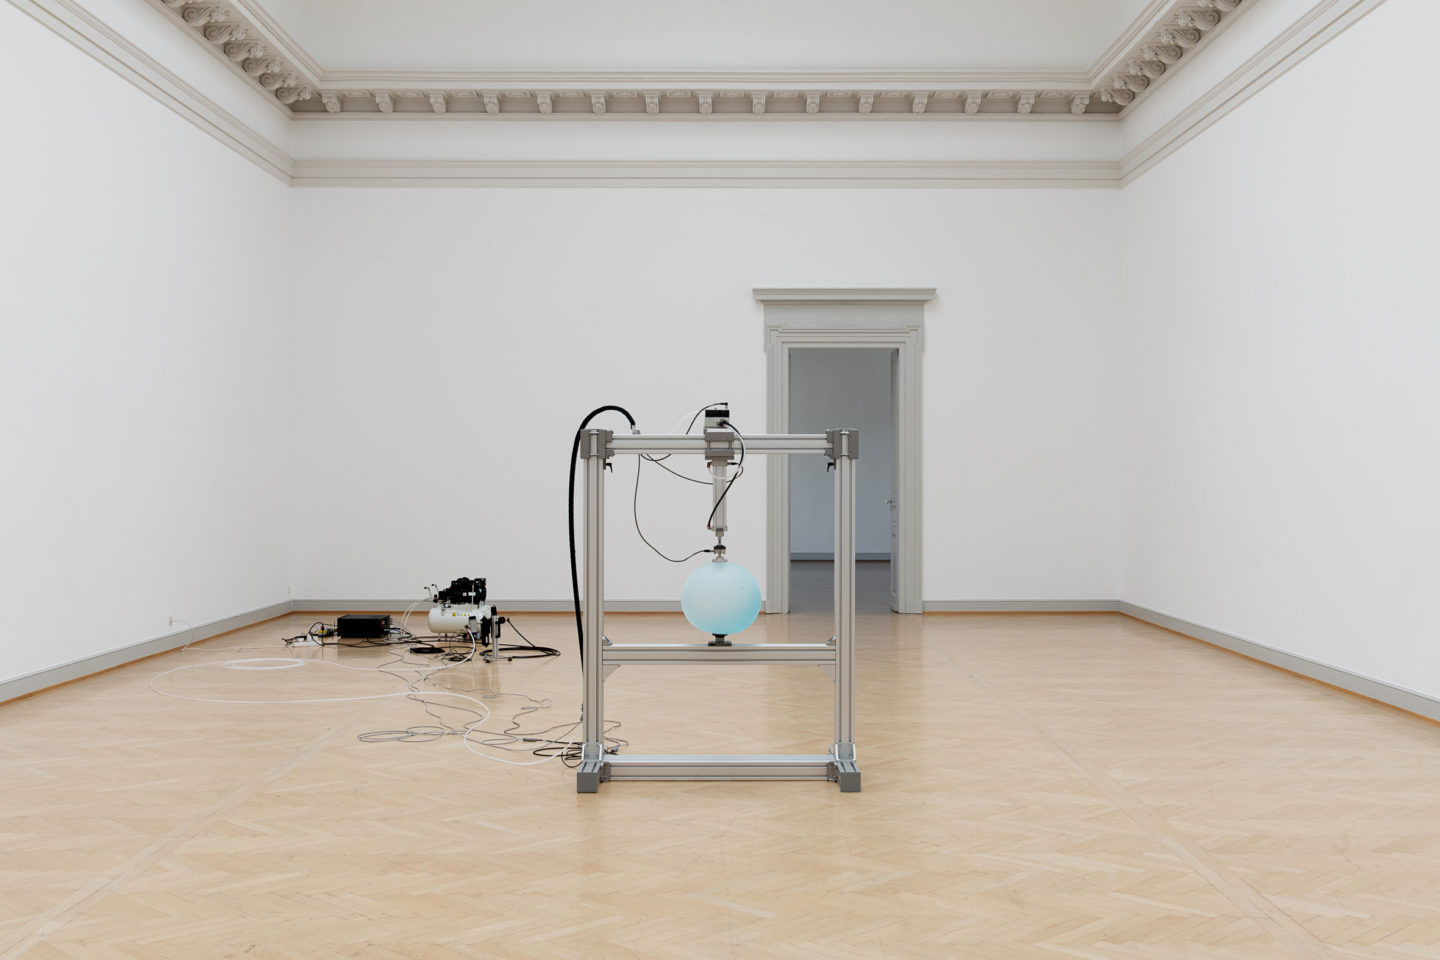 Installation View Nina Canell featuring Robin Watkins «Reflexologies, 2018» at Kunstmuseum St. Gallen, 2018 / Courtesy: the artist / Photo: Sebastian Stadler